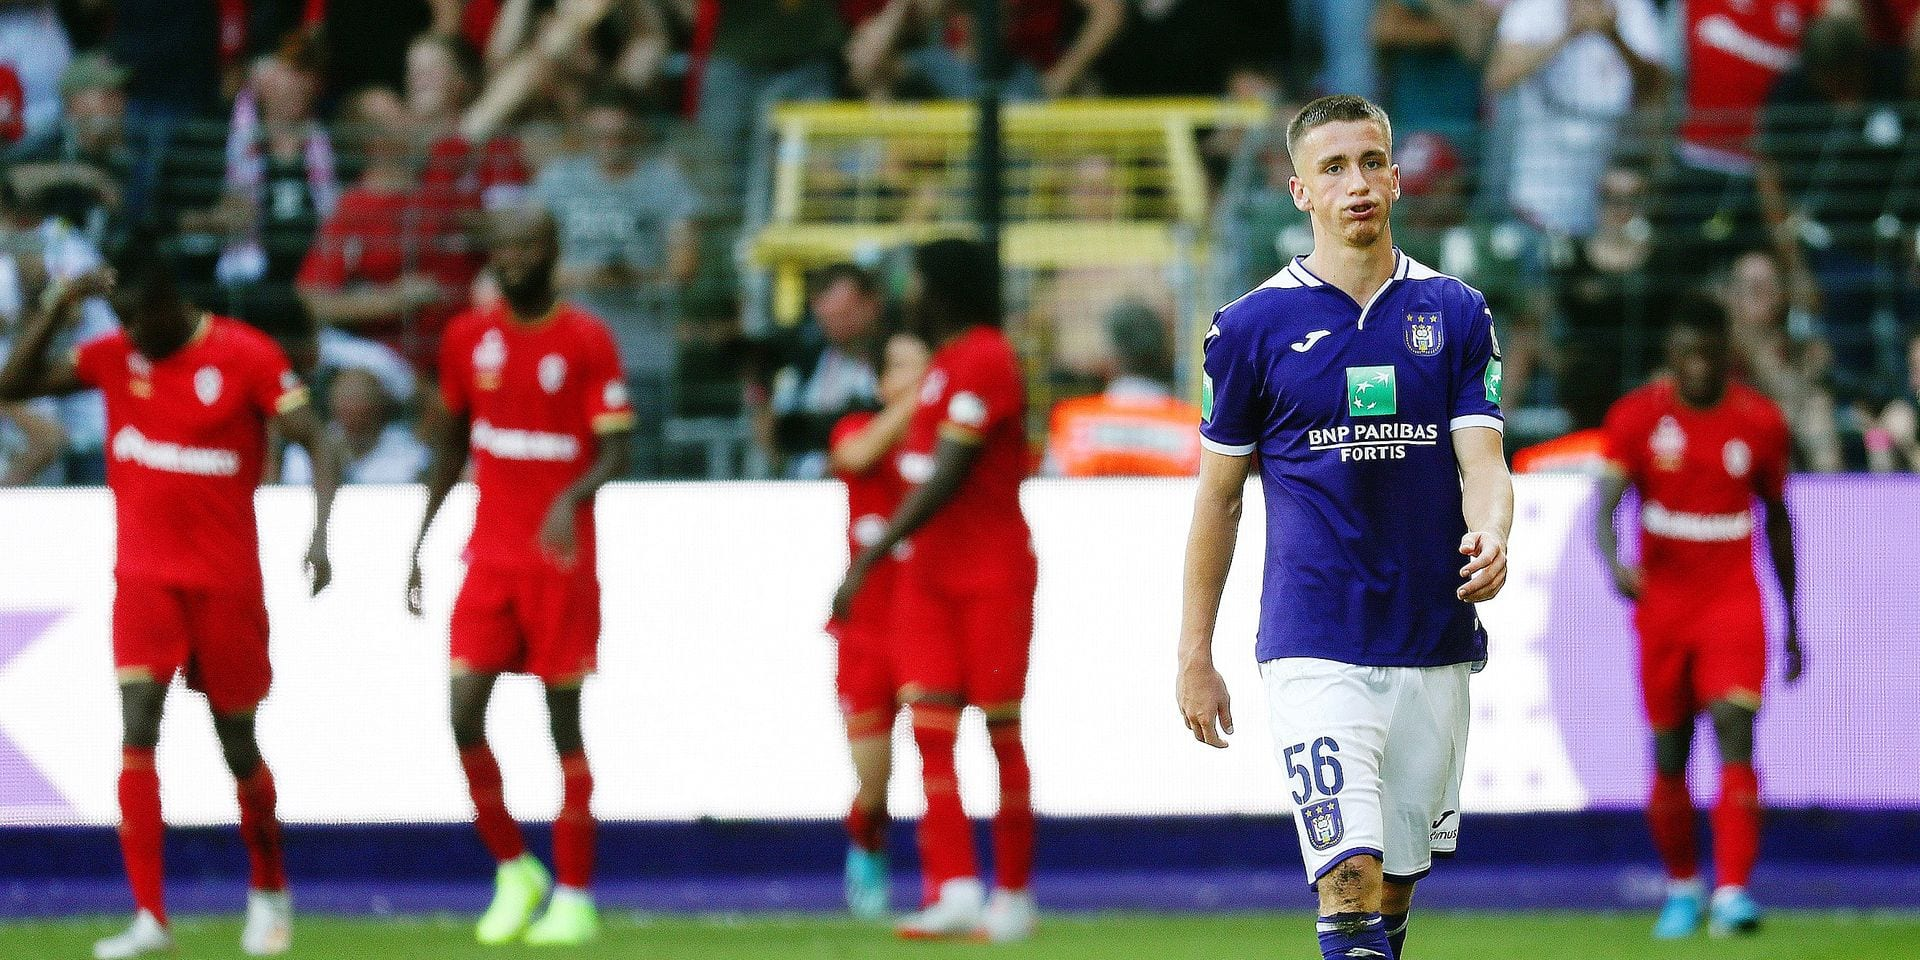 Anderlecht's Alexis Saelemaekers looks dejected during a soccer match between RSC Anderlecht vs Royal Antwerp FC, Sunday 15 September 2019 in Brussels, on the seventh day of the 'Jupiler Pro League' Belgian soccer championship season 2019-2020. BELGA PHOTO VIRGINIE LEFOUR